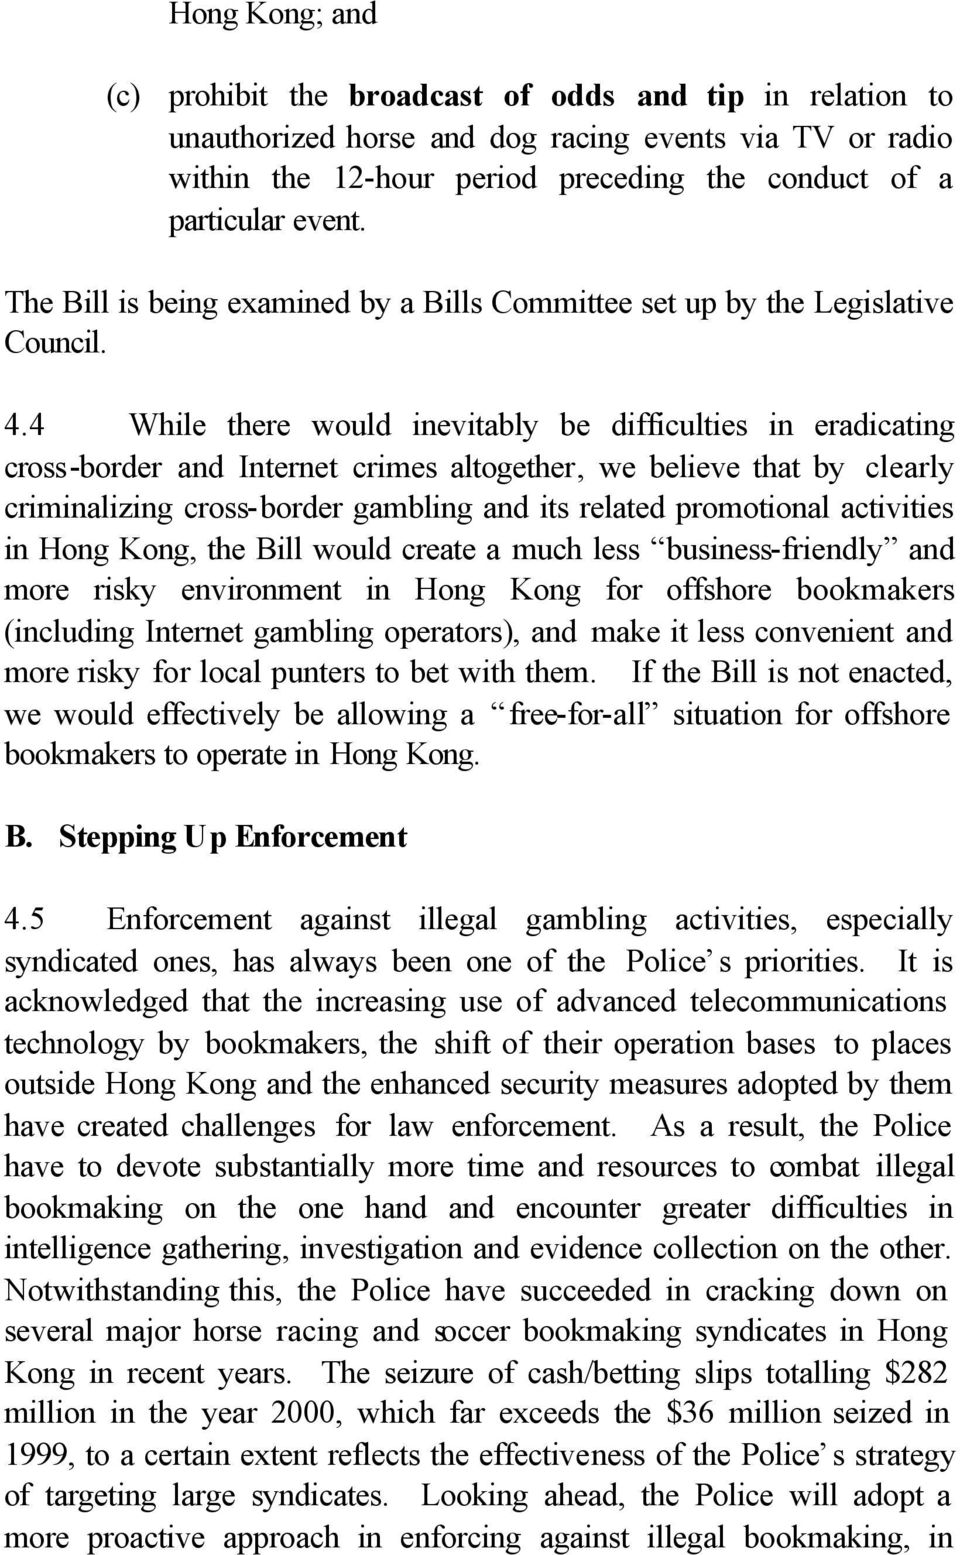 4 While there would inevitably be difficulties in eradicating cross-border and Internet crimes altogether, we believe that by clearly criminalizing cross-border gambling and its related promotional